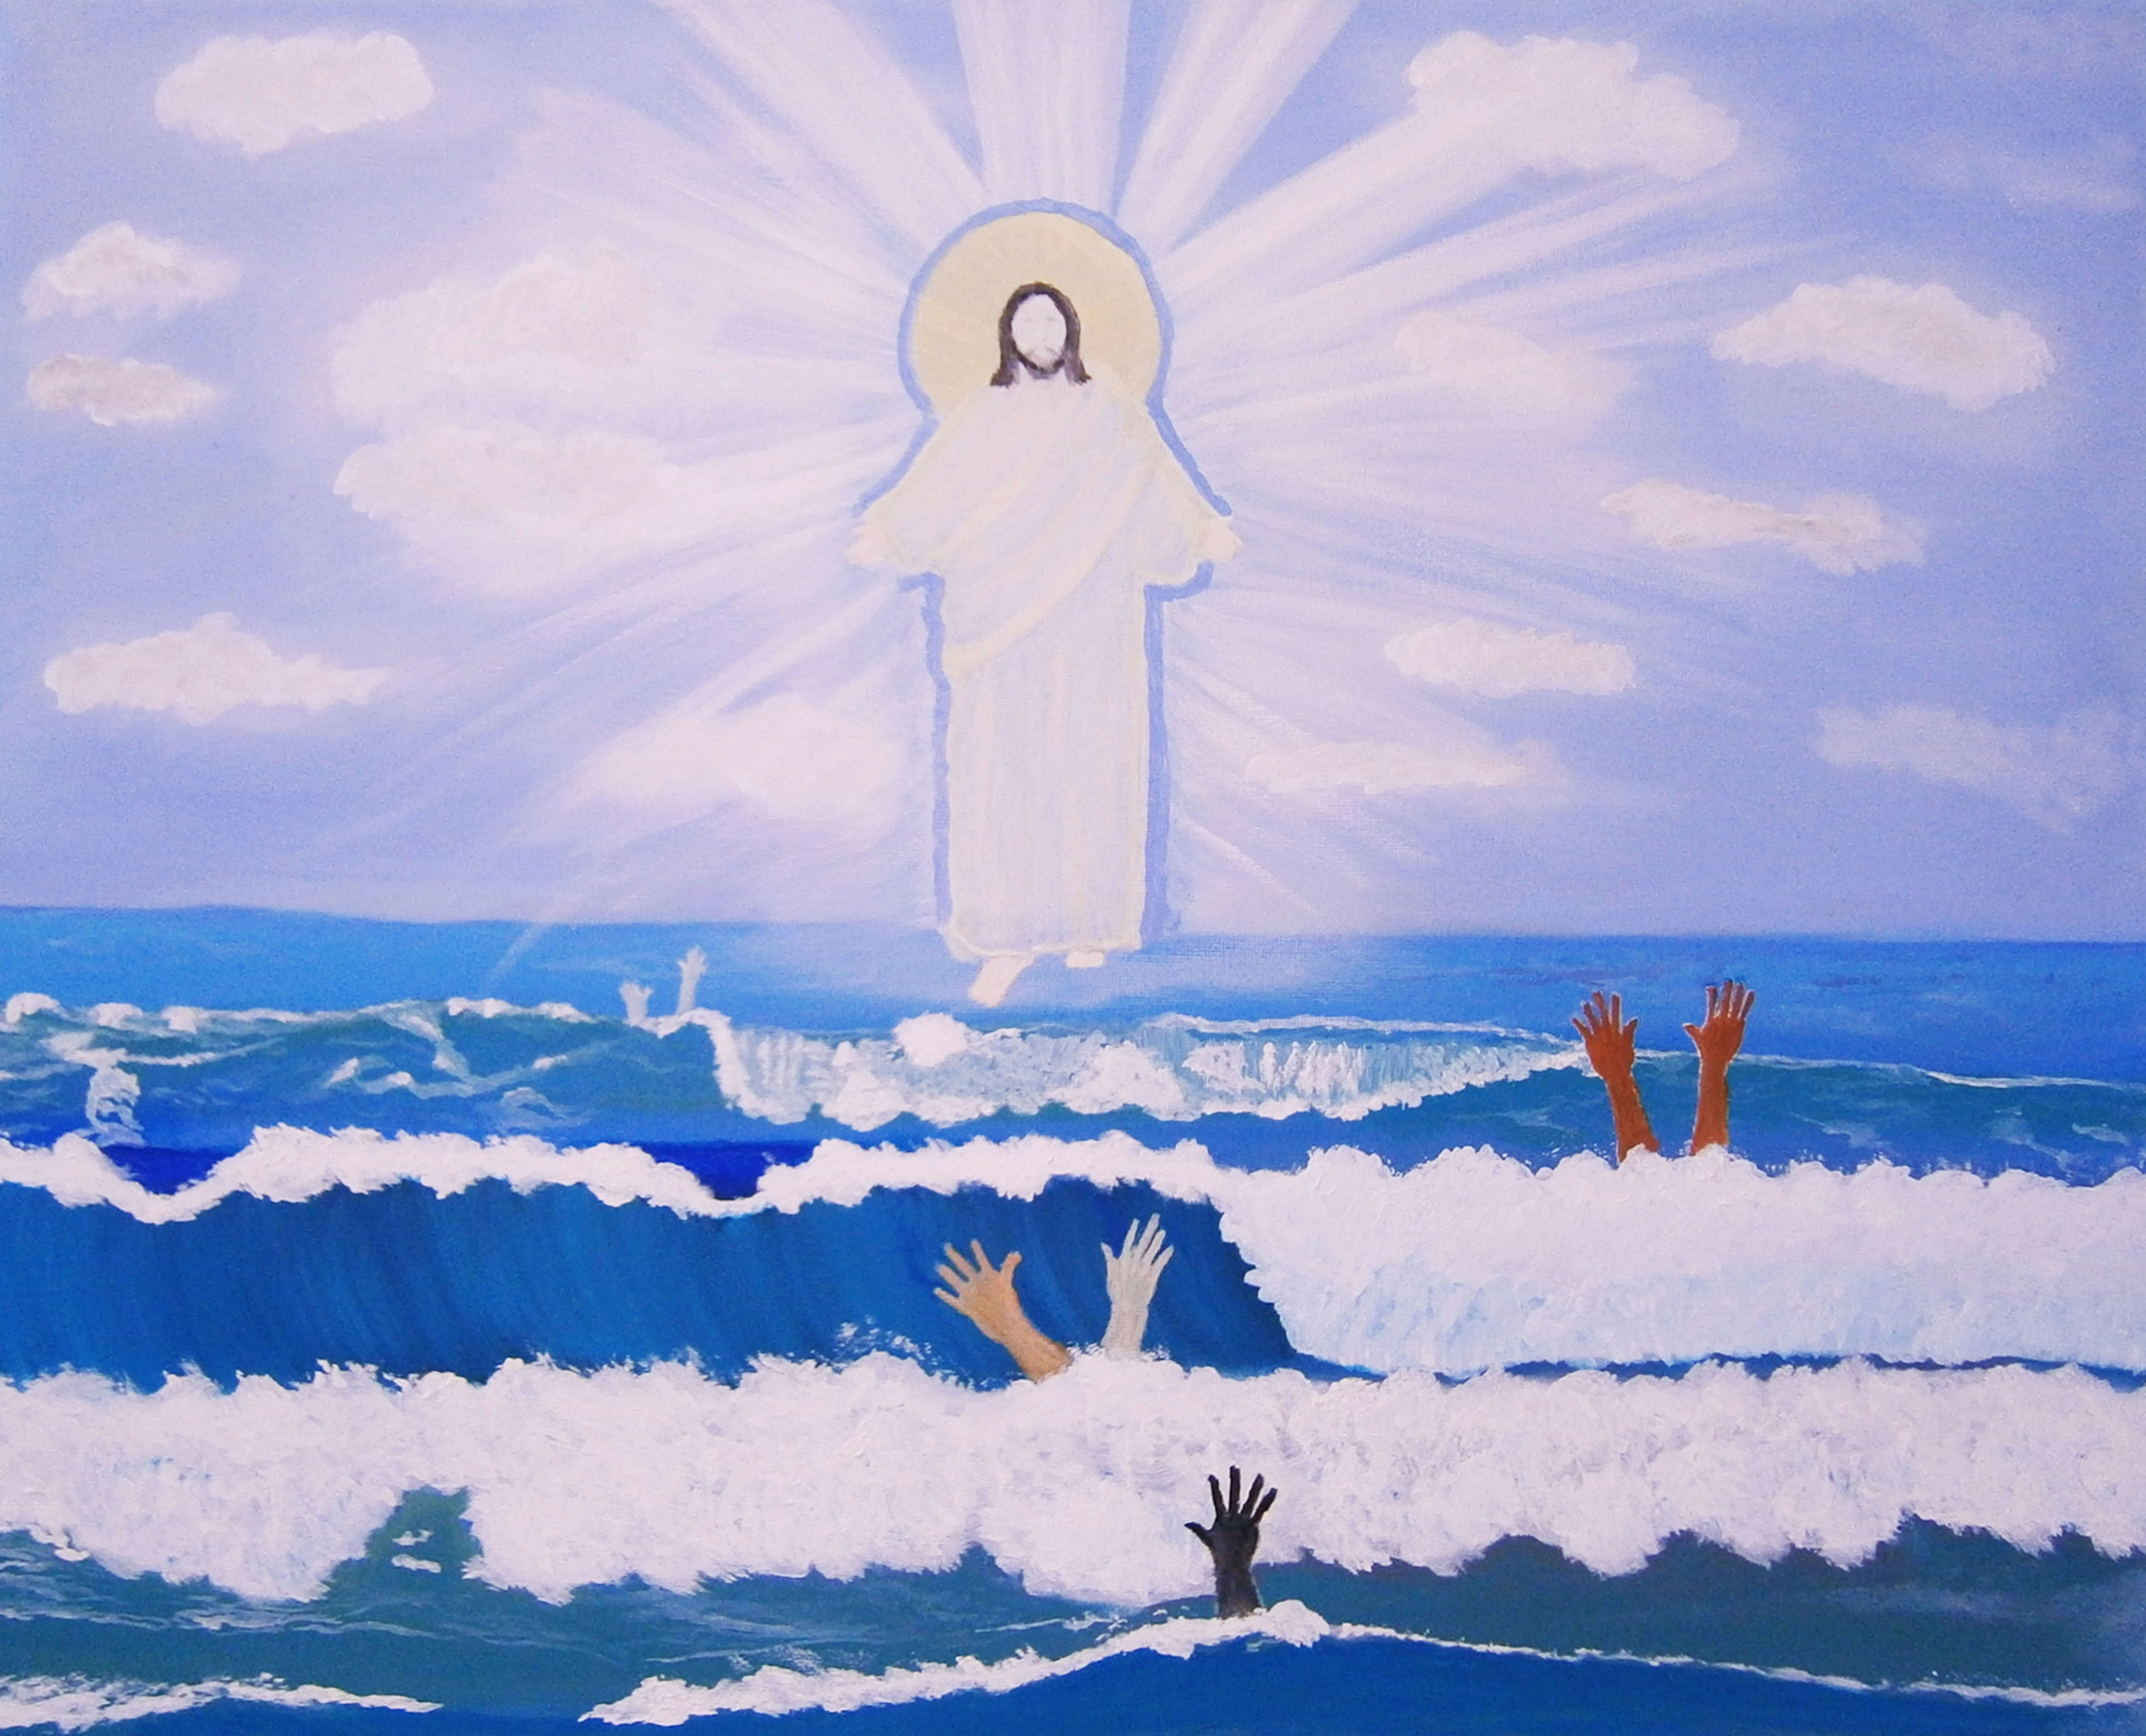 Ganga Sajith: 'jesus beyond race', 2017 Oil Painting, Christian. Artist Description: - GOD BEYOND RACE- ONE OF A KIND ORIGINAL- OIL PAINTING ON STRETCHED CANVAS- CERTIFICATE OF AUTHENTICITY INCLUDED- SIDES ARE PAINTED BLUEBlack, Brown or White. The truth has no color. One of a kind original oil painting of Jesus Christ walking on water. Original signed artwork. ...